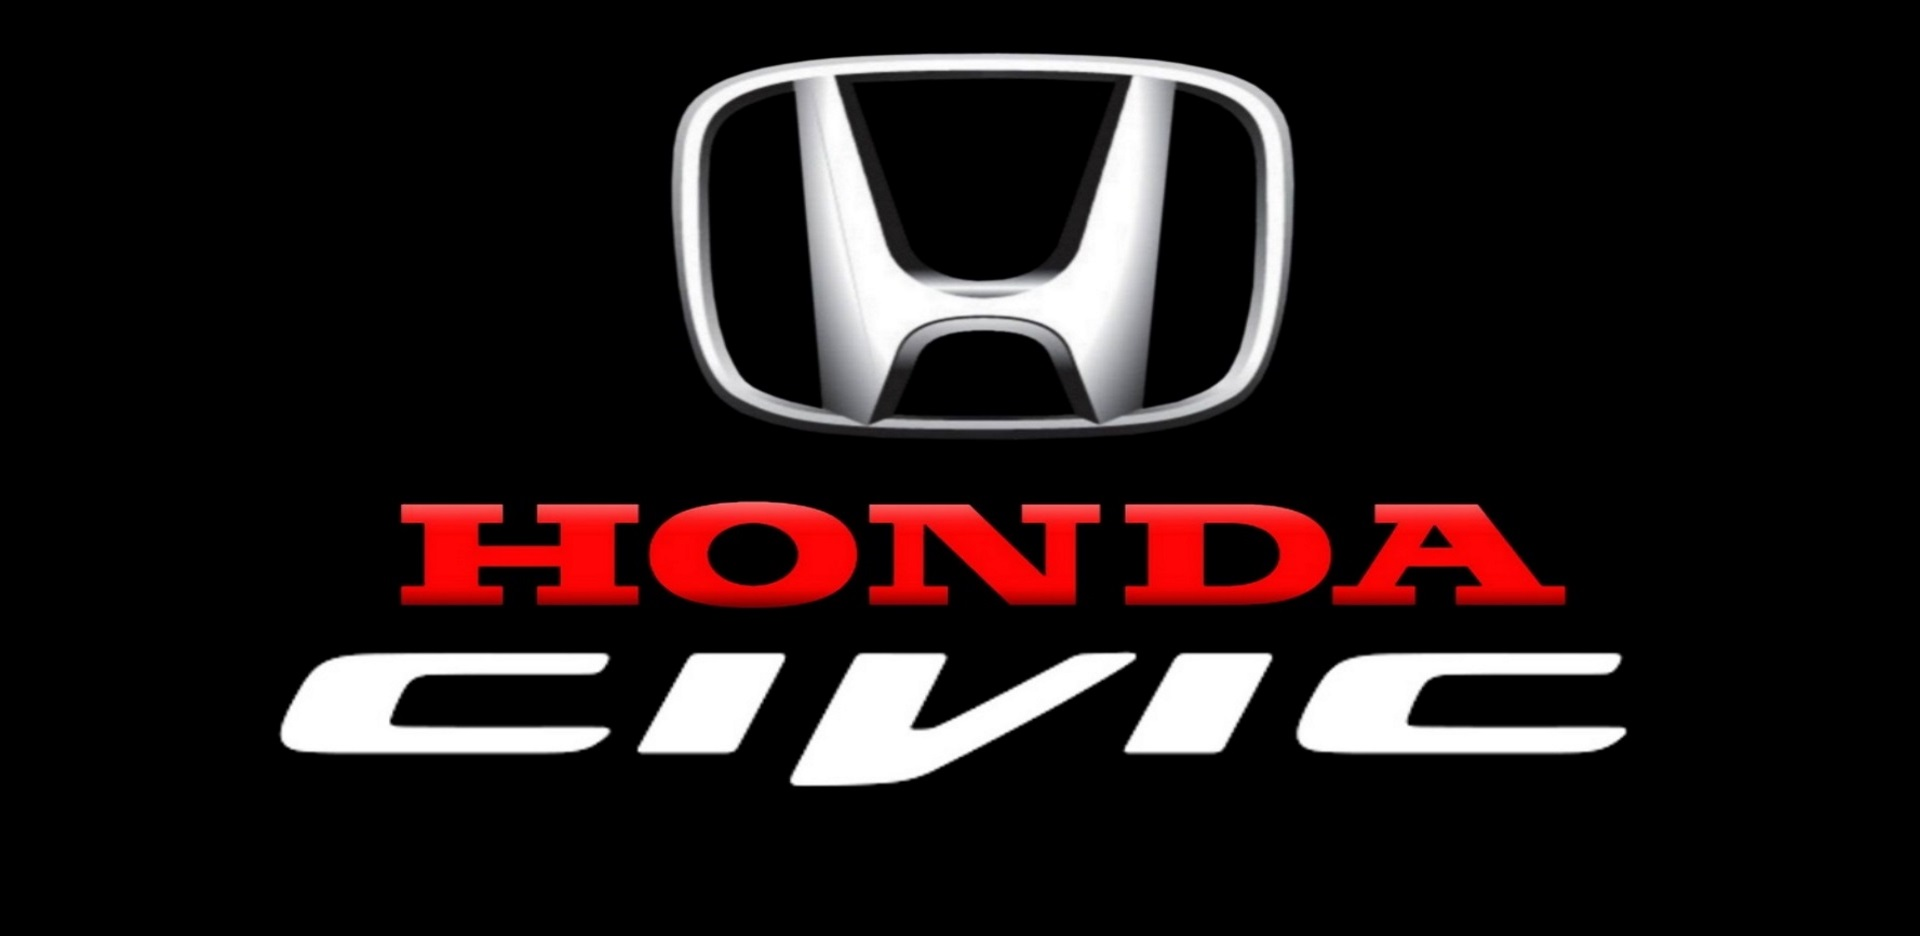 Hd Wallpapers Quotes For Iphone 6 Download Honda Civic Logo Wallpaper Gallery